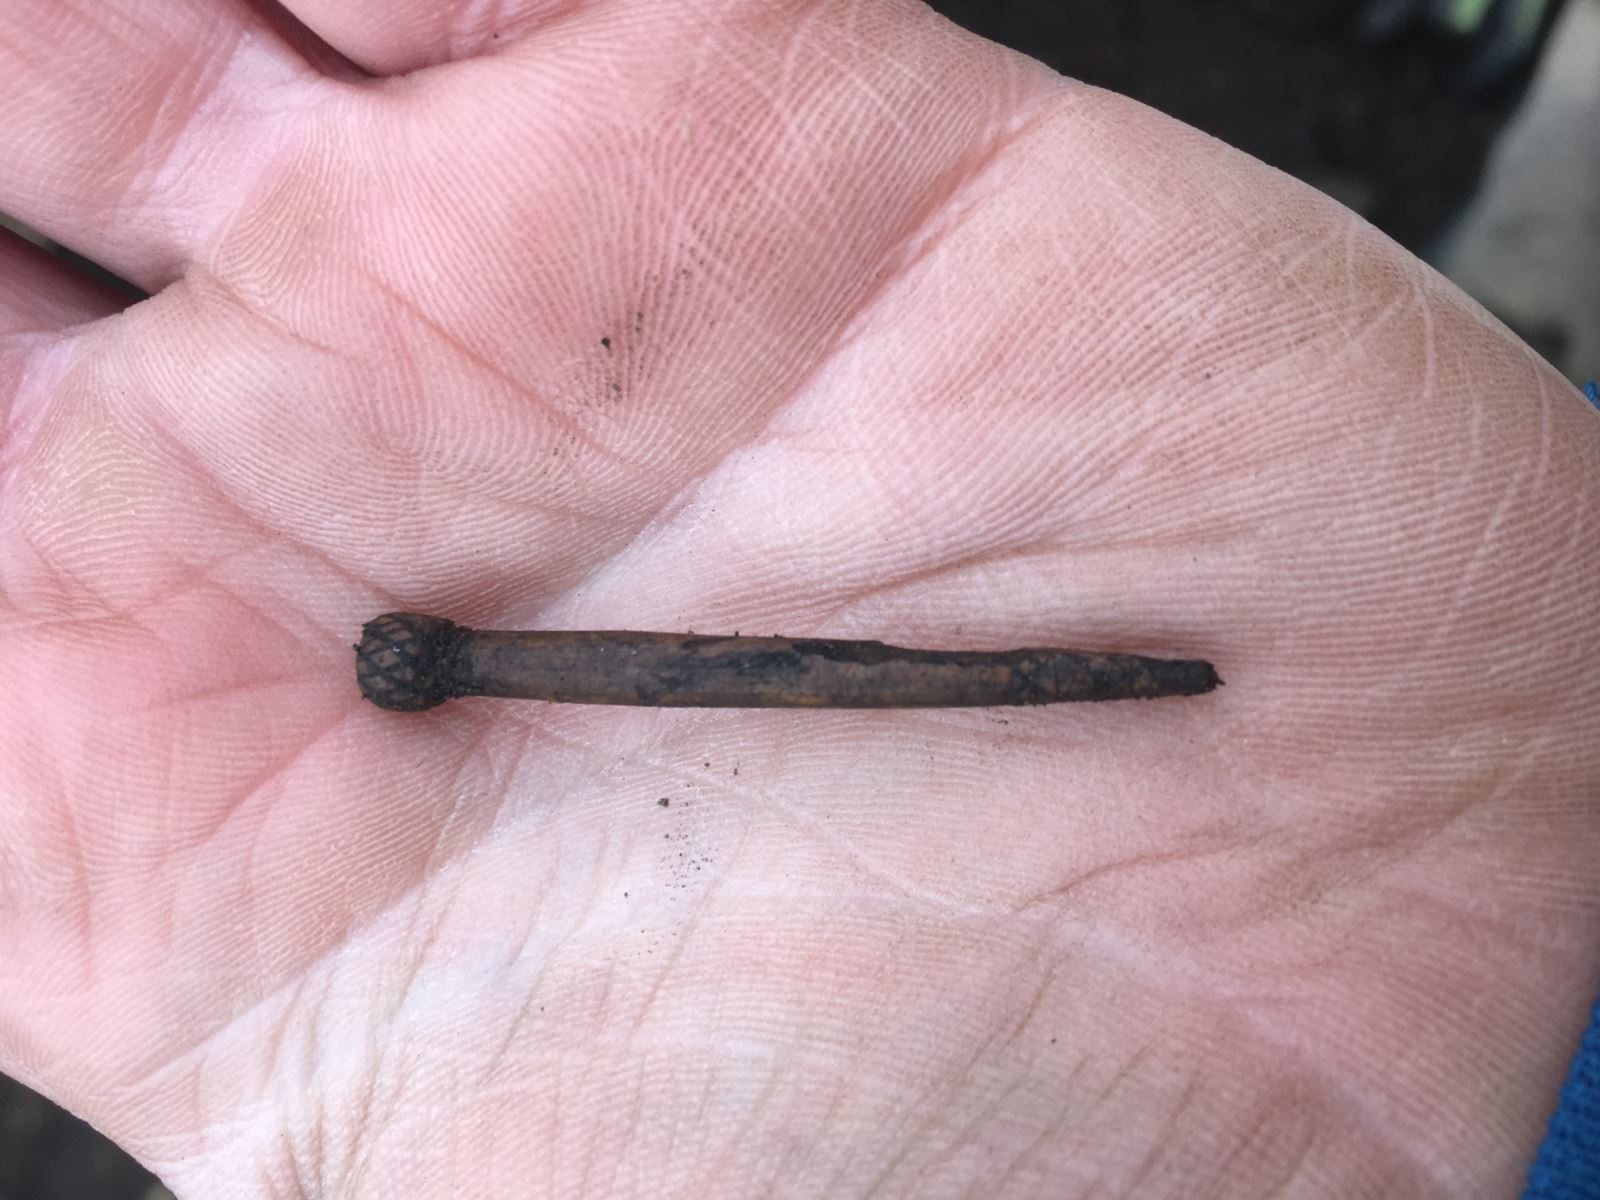 A bramble headed dress or hair pin